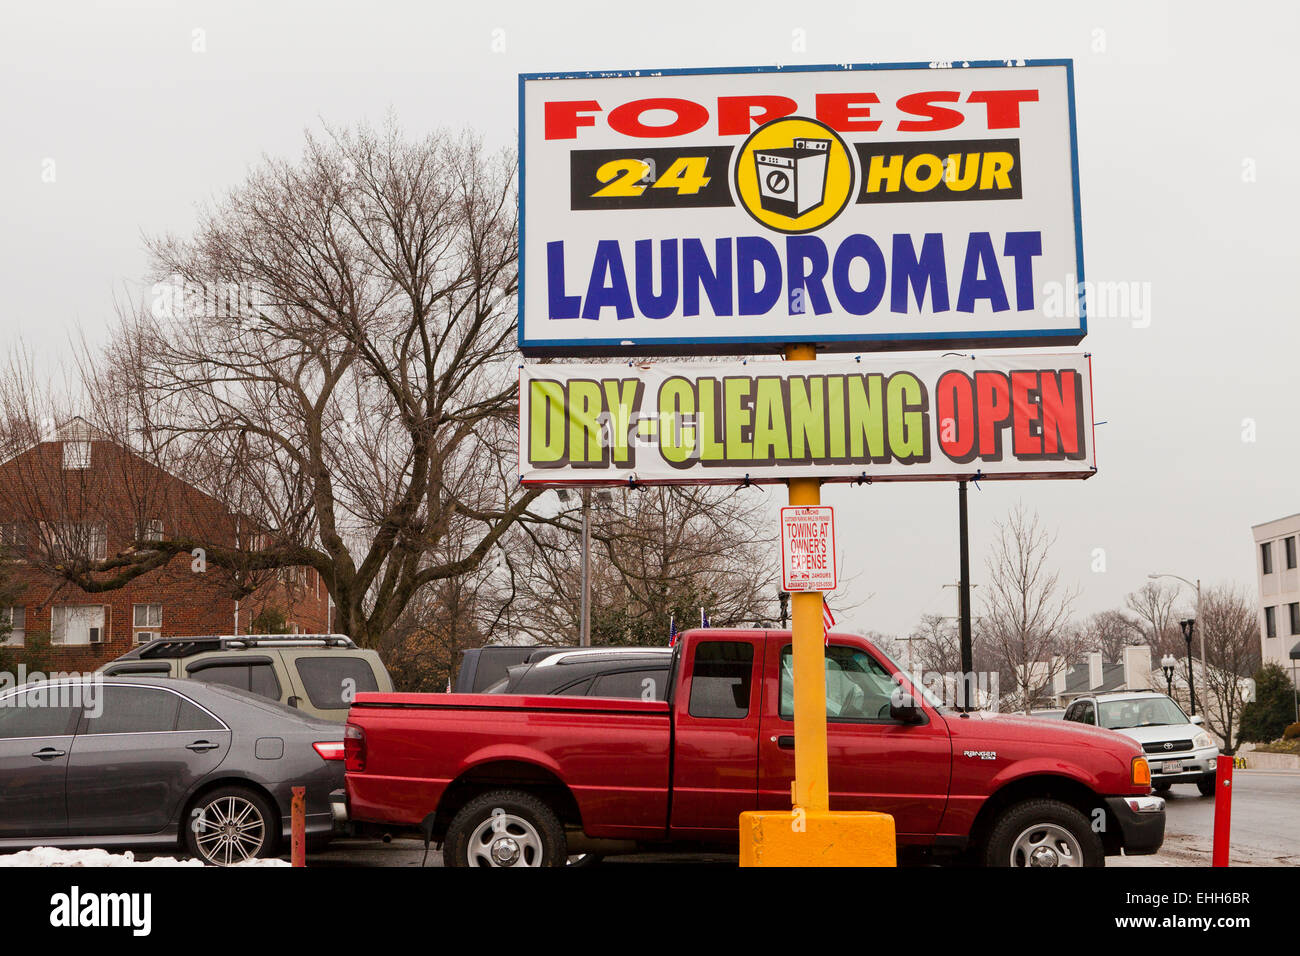 24 hour Laundromat sign - USA - Stock Image